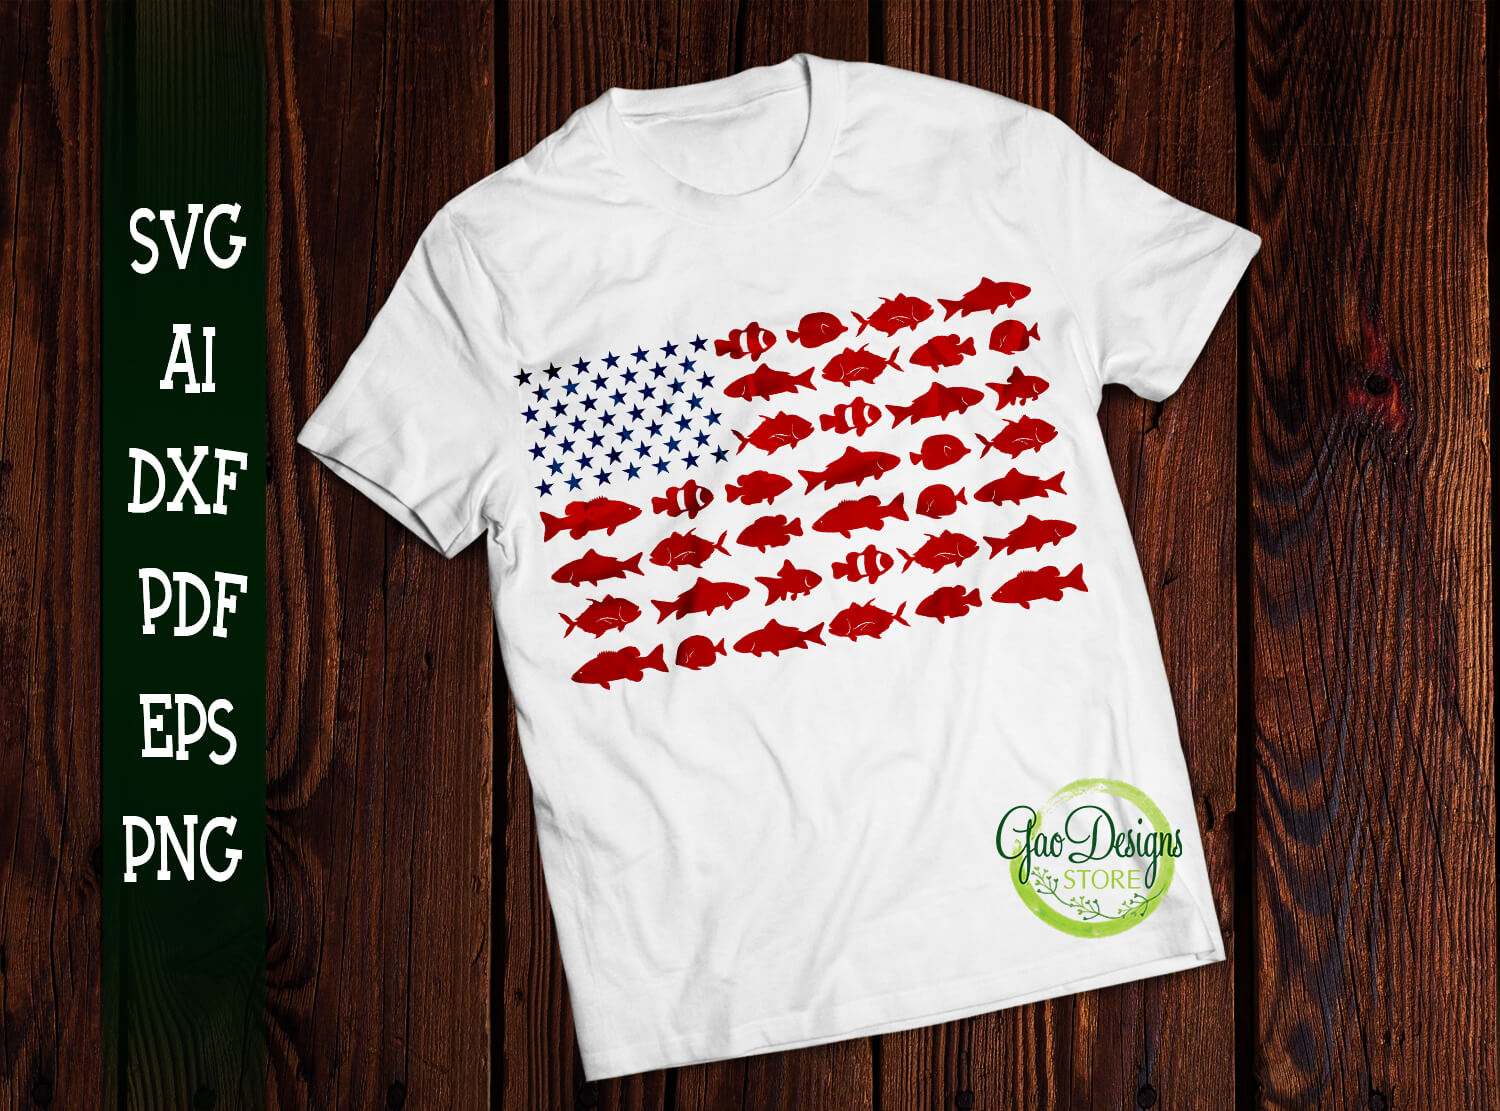 Download Fishing Usa Flag Svg Fishing America Flag 4th Of July Shirt Independence Day Fourth Of July Distressed Us Flag Svg Gaodesigns Store